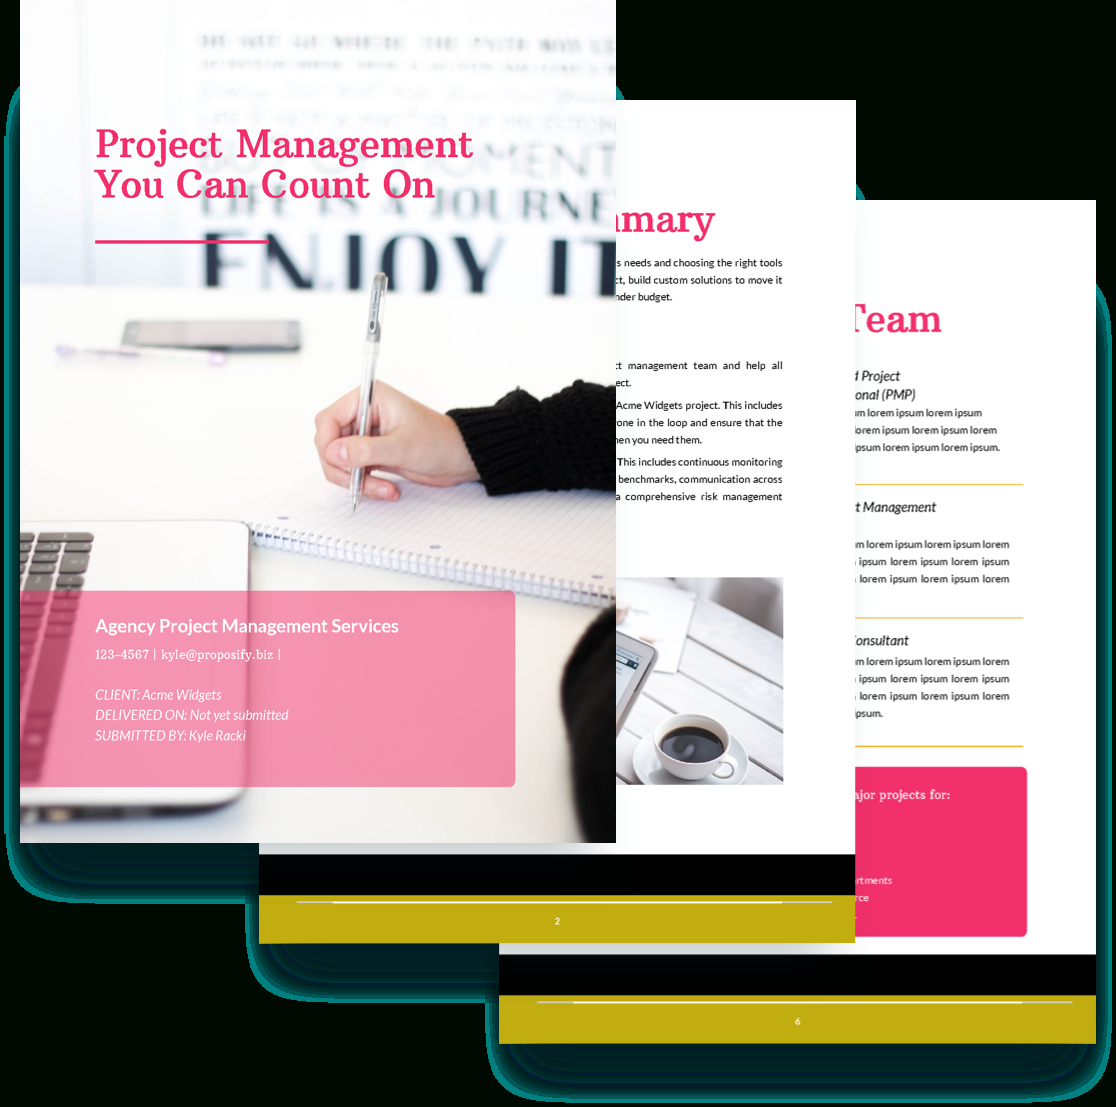 Project Management Proposal Template - Free Sample | Proposify in Project Management Design Templates